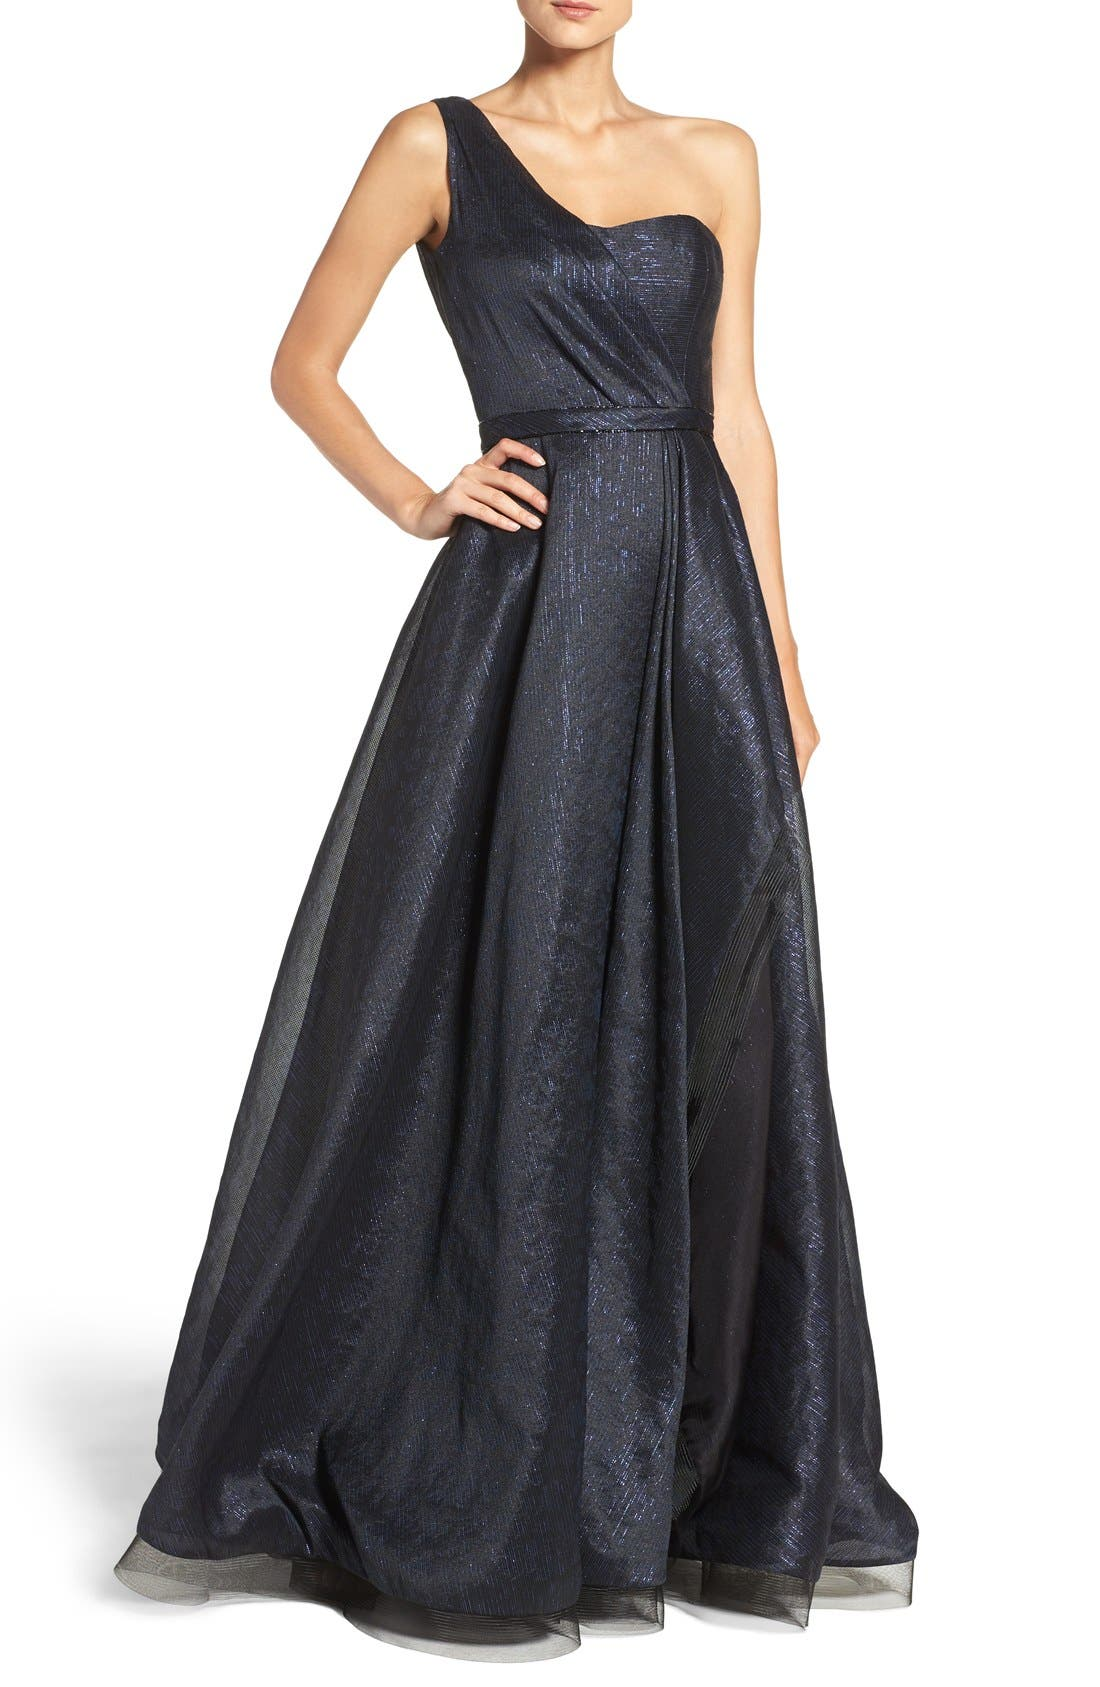 Alternate Image 1 Selected - Pamella, Pamella Roland One-Shoulder Metallic Ballgown